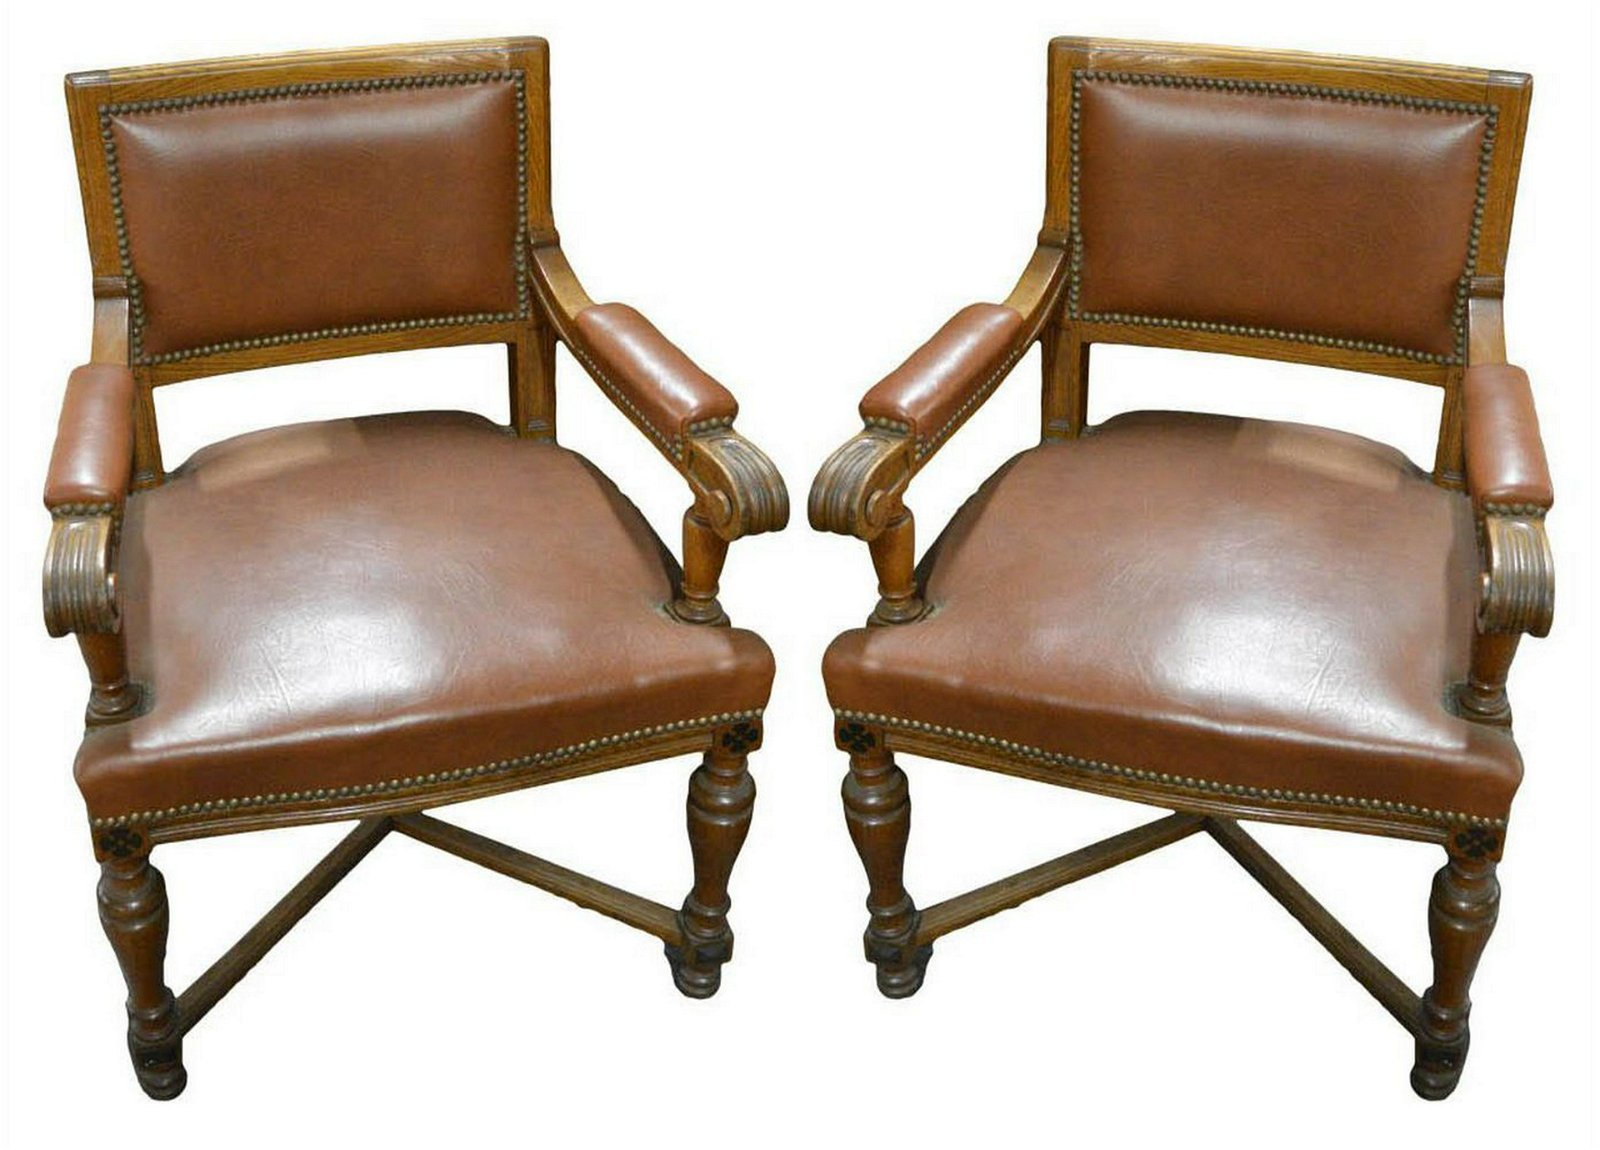 Pair of Cromwellian-style occasional chairs